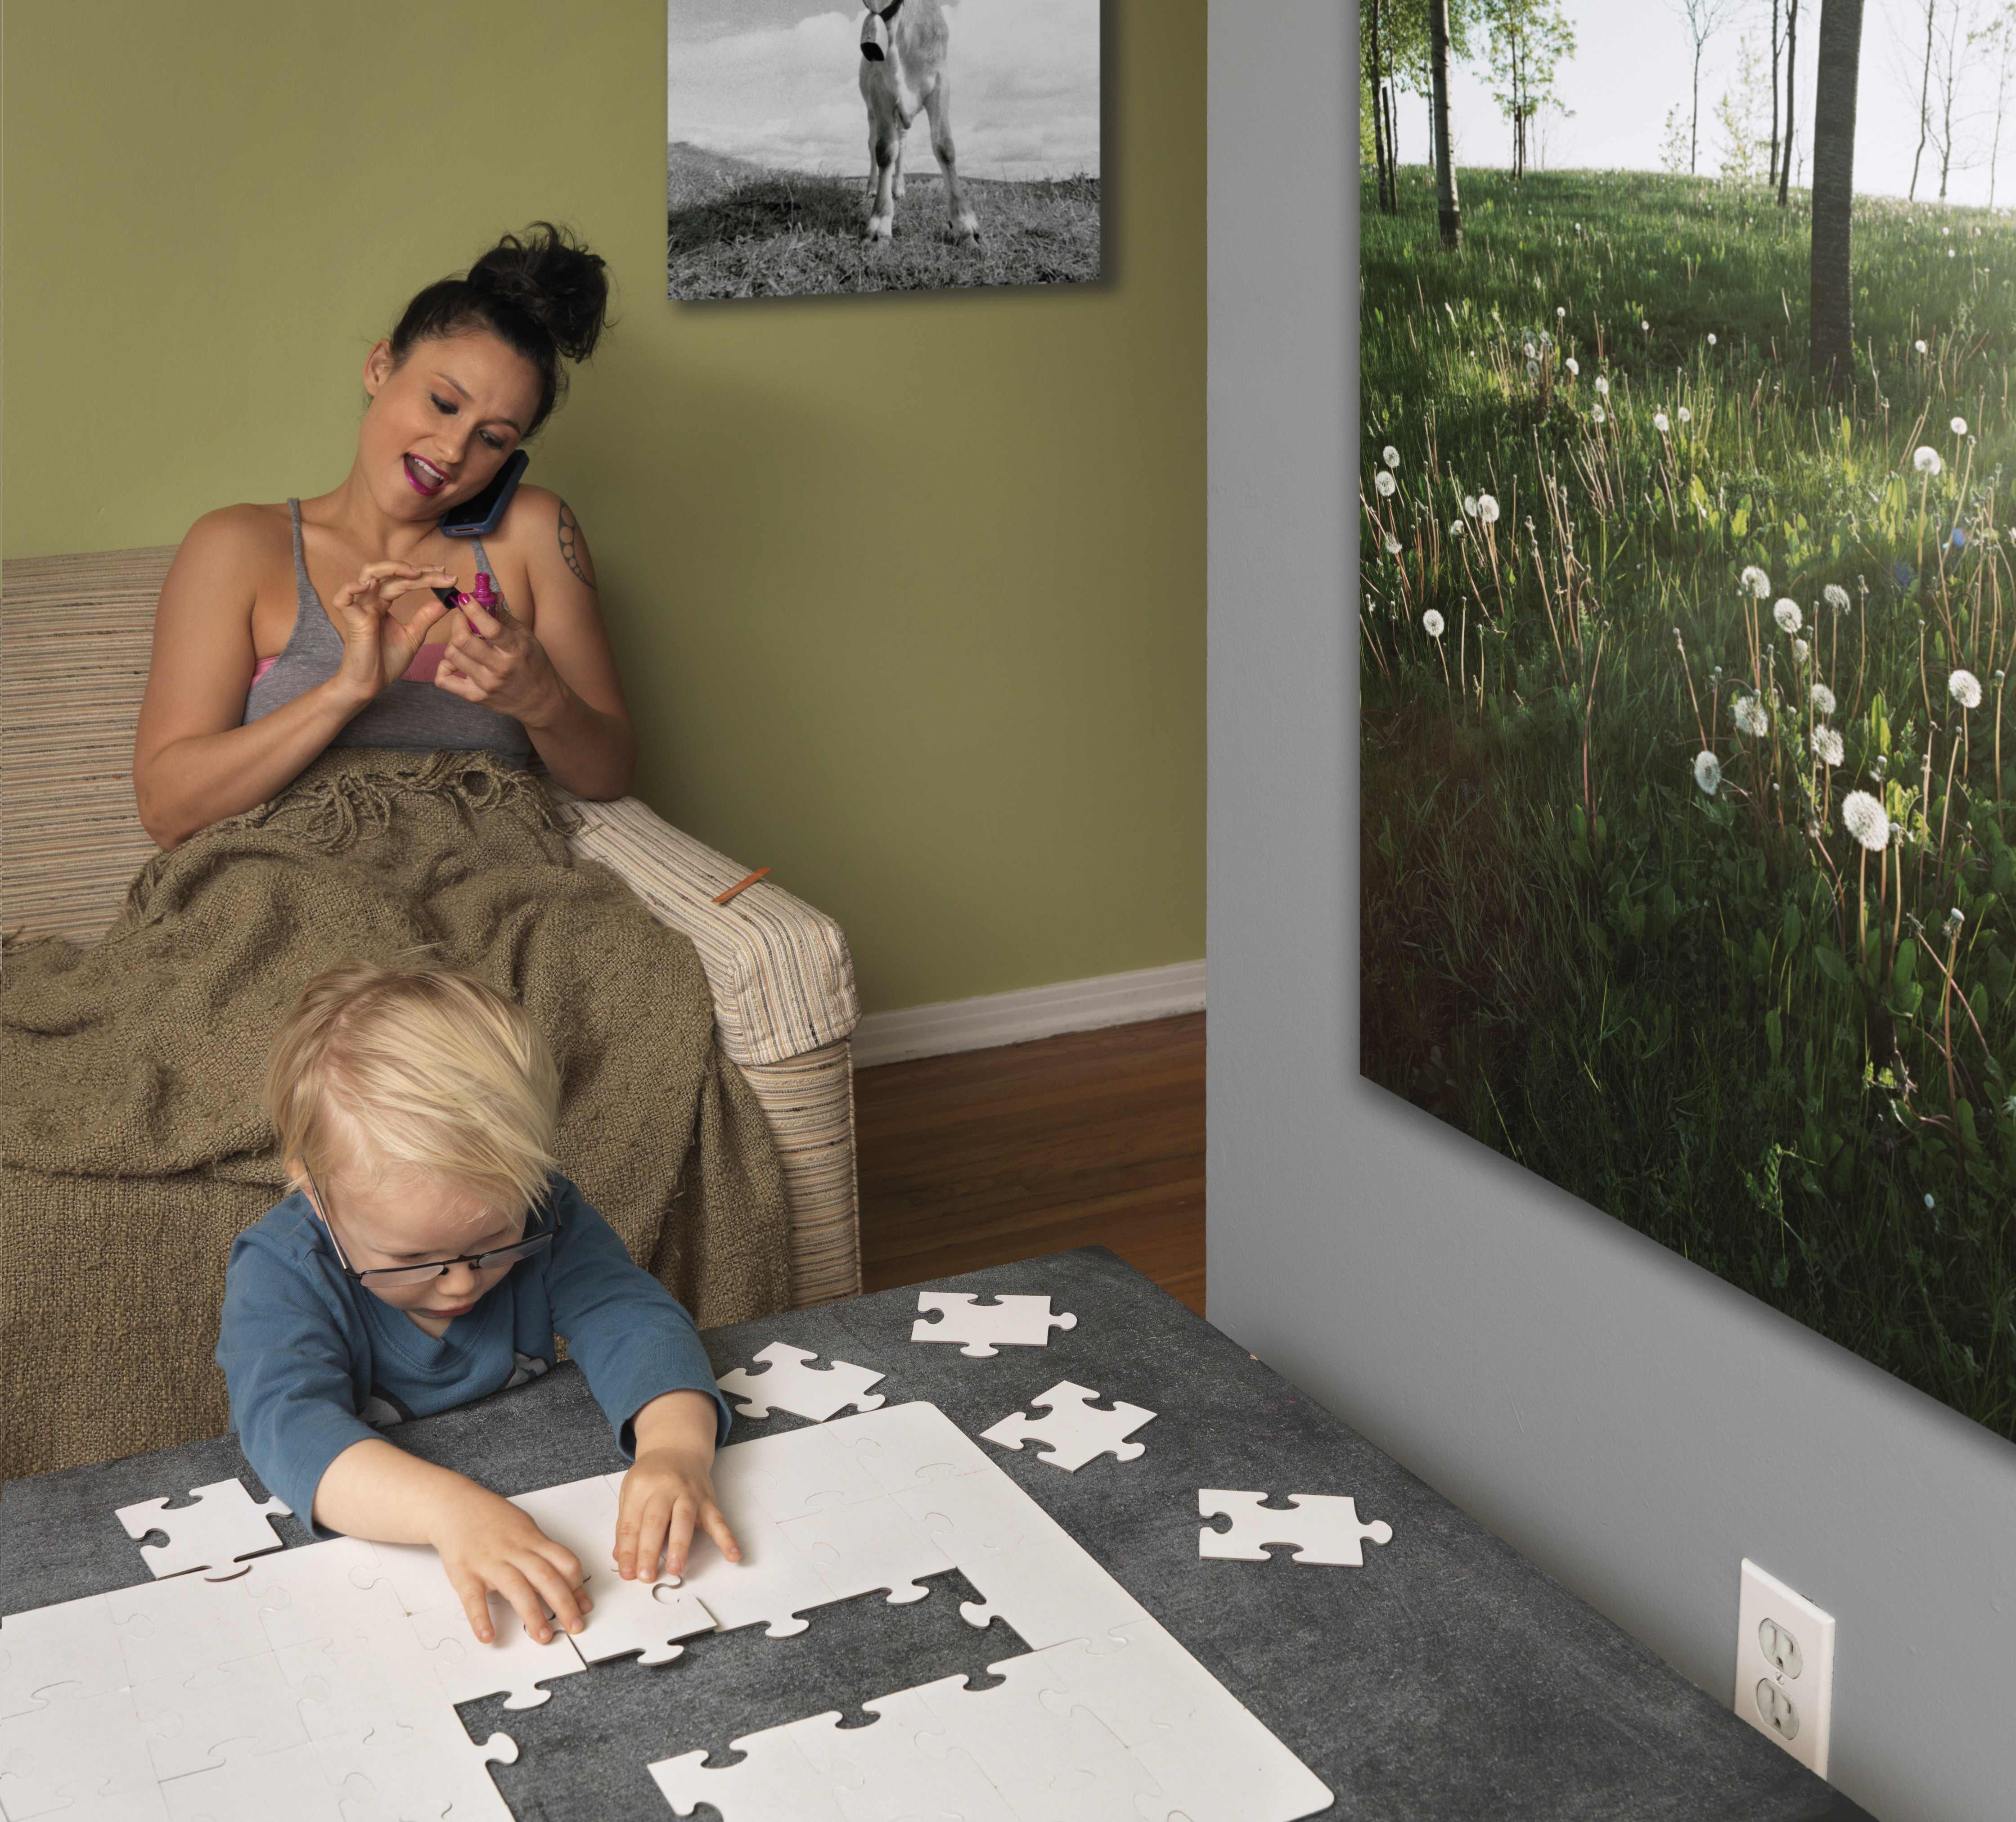 Babysitter with toddler putting together a white jigsaw puzzle